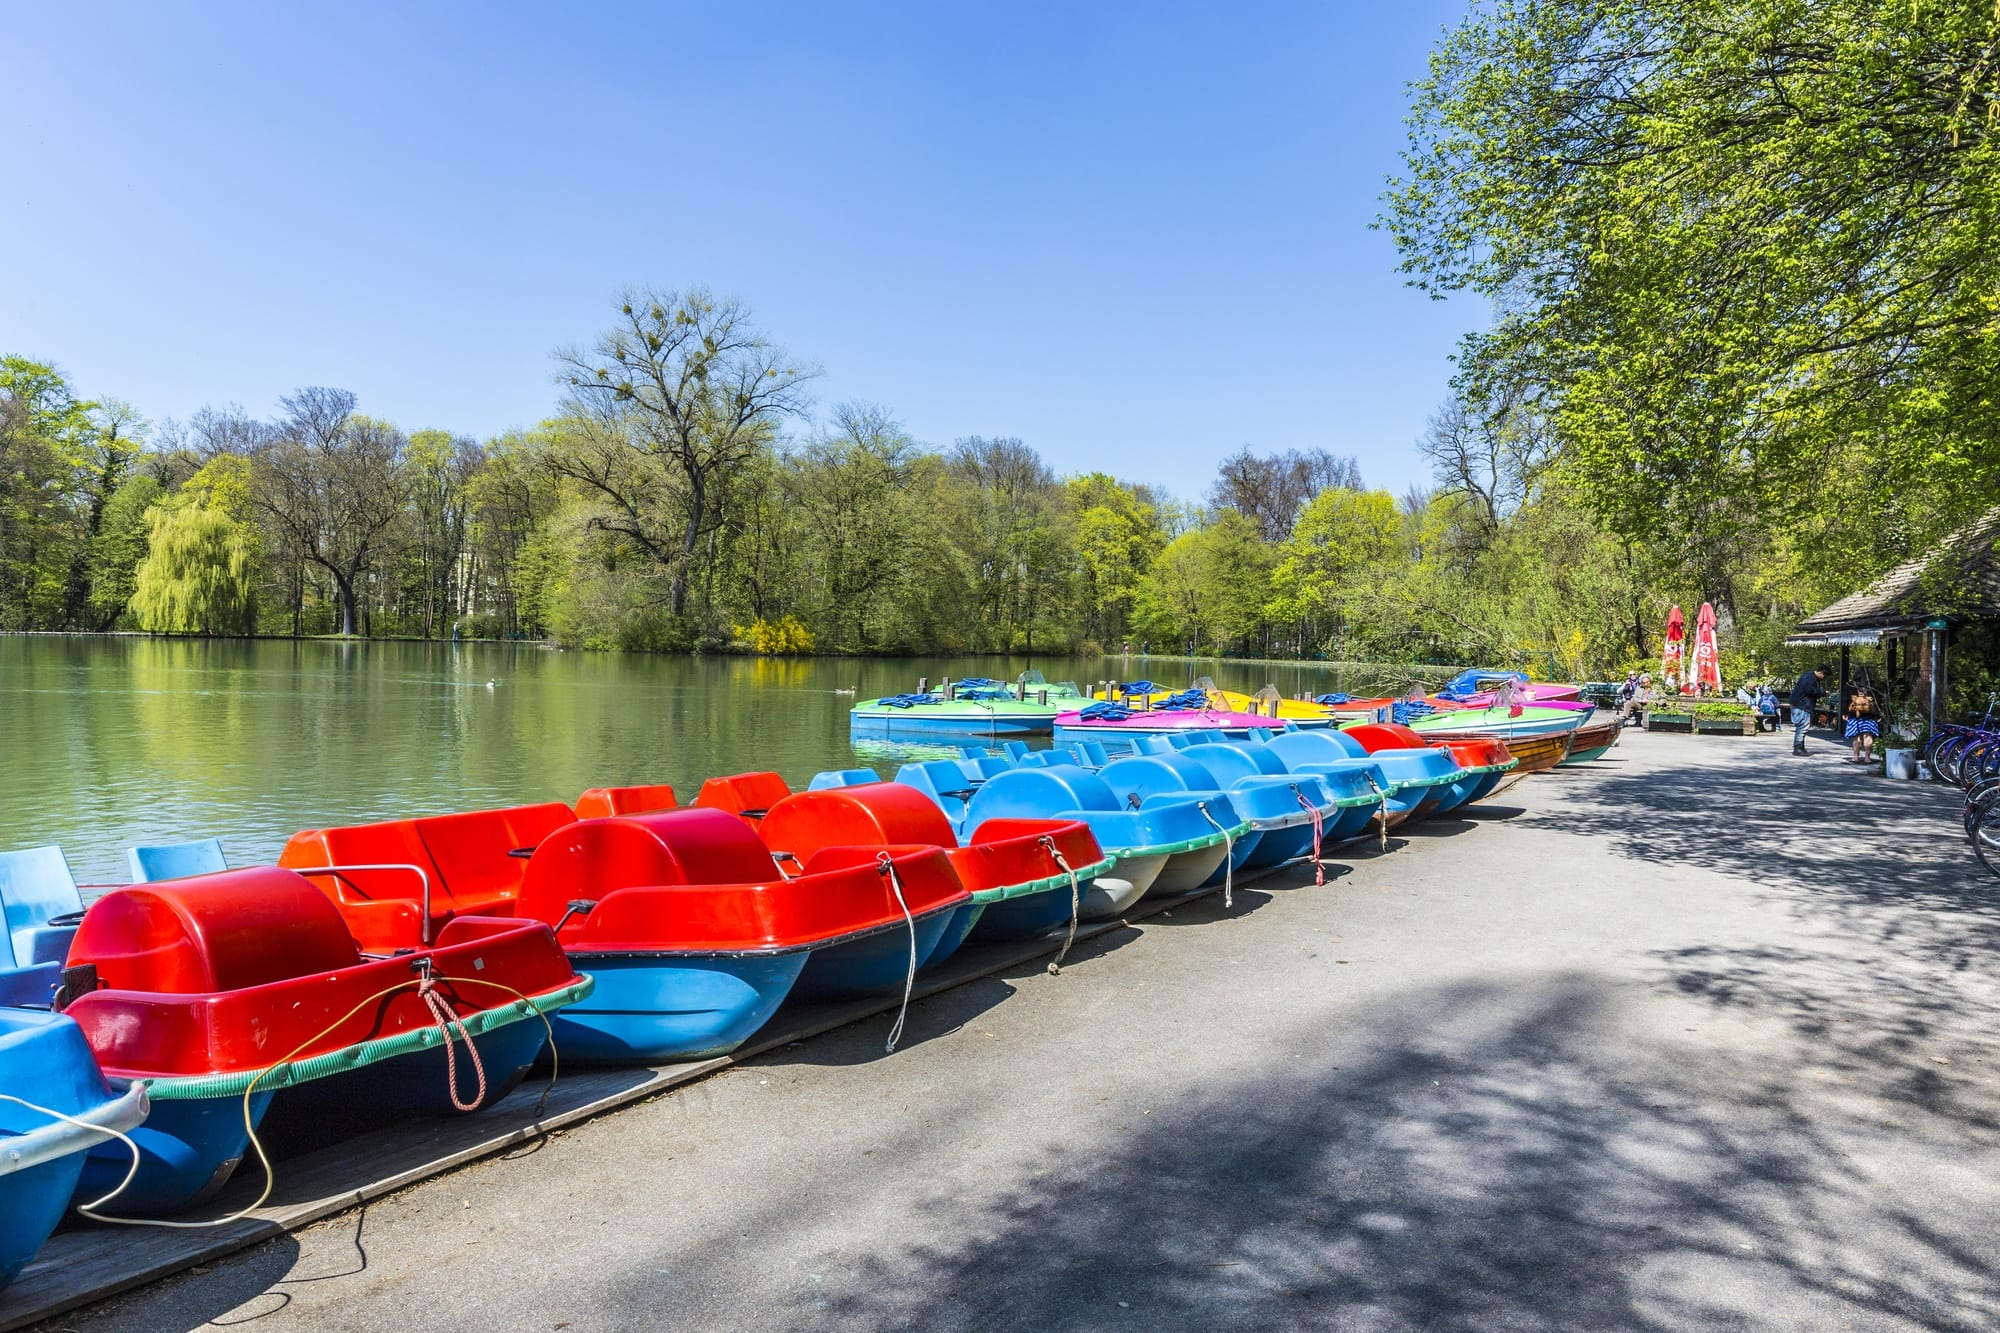 Boats for rent at Kleinhesseloher Lake in the English Garden in Munich with kids